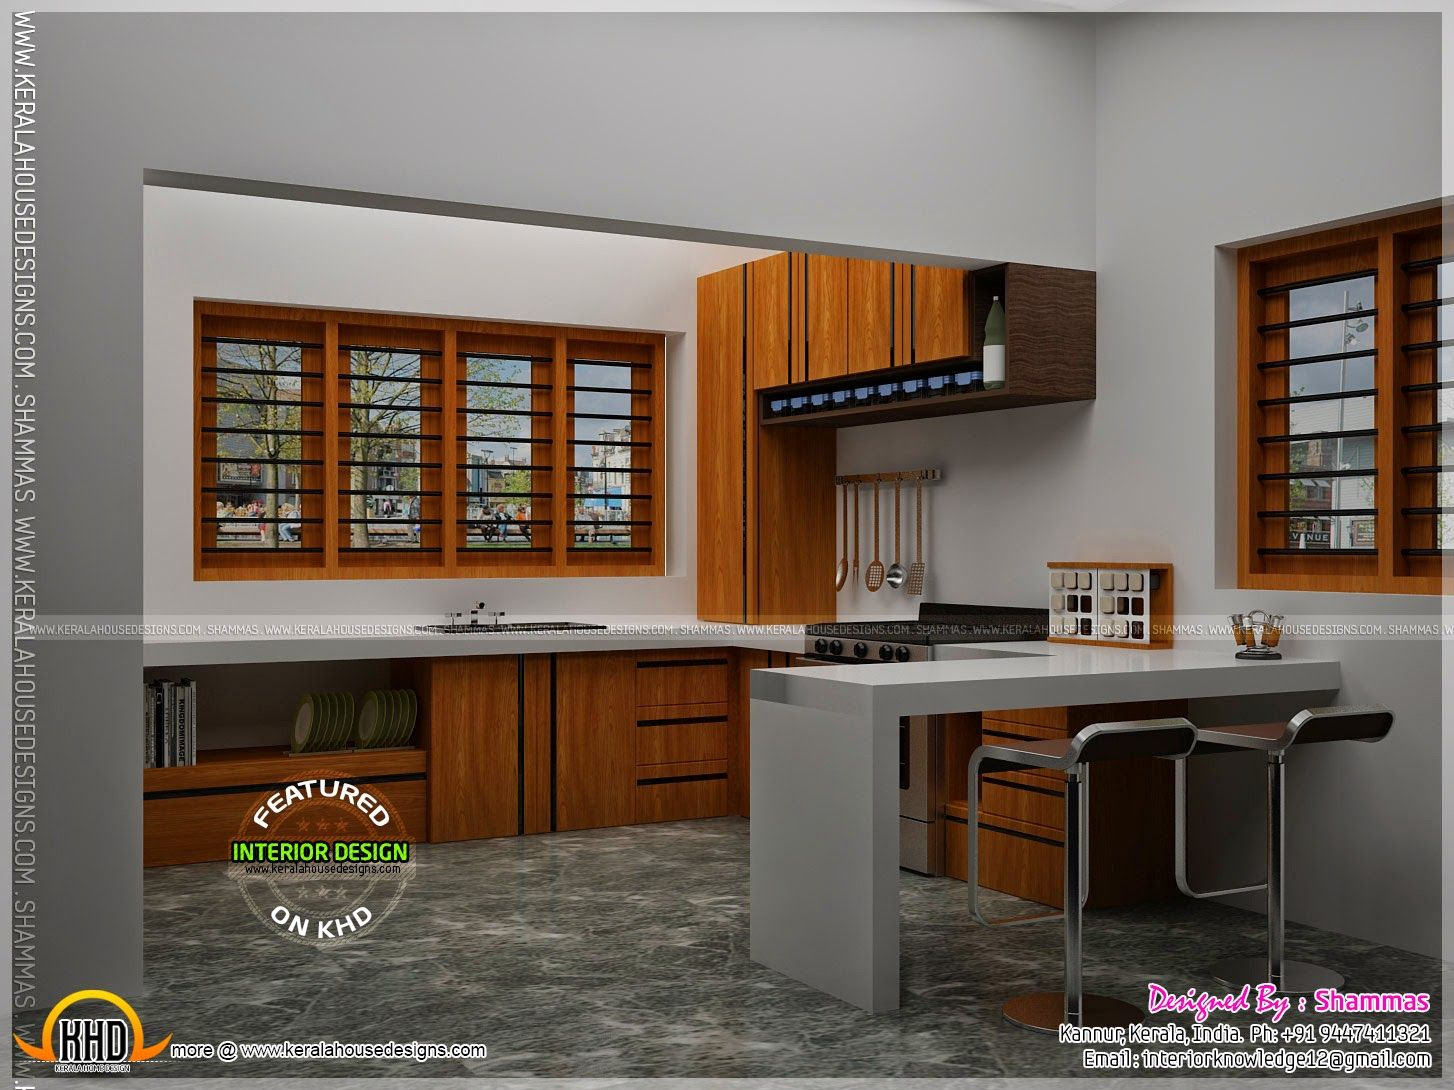 Kitchen Designs Kerala Joy Studio Design Gallery Design Kerala Kitchen  Interior Design Joy Studio Design Gallery